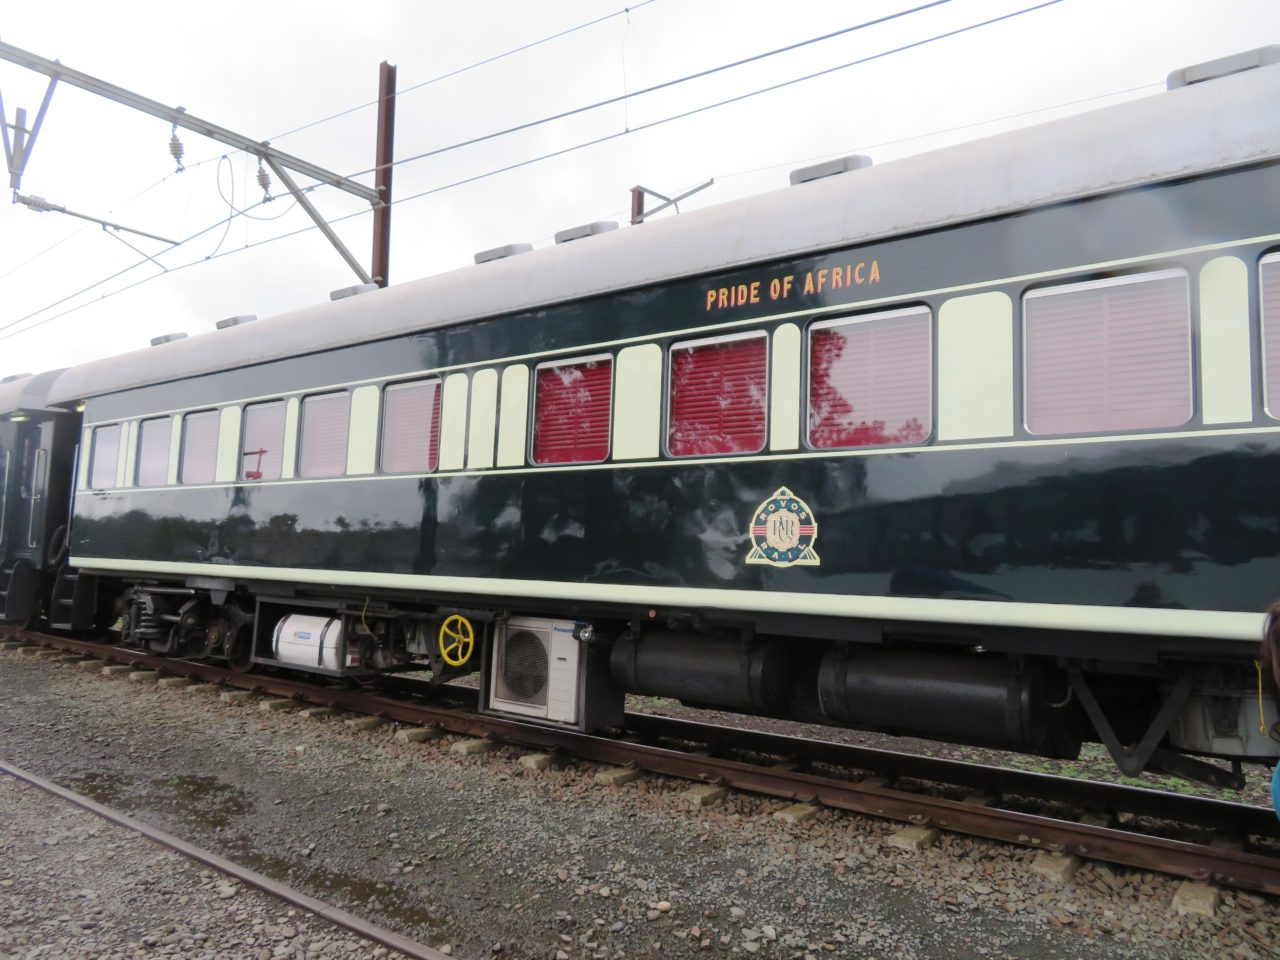 The <strong>Rovos <em>Rail</em></strong> <em>Pride of Africa</em> train is hailed as the most luxurious train in the world!